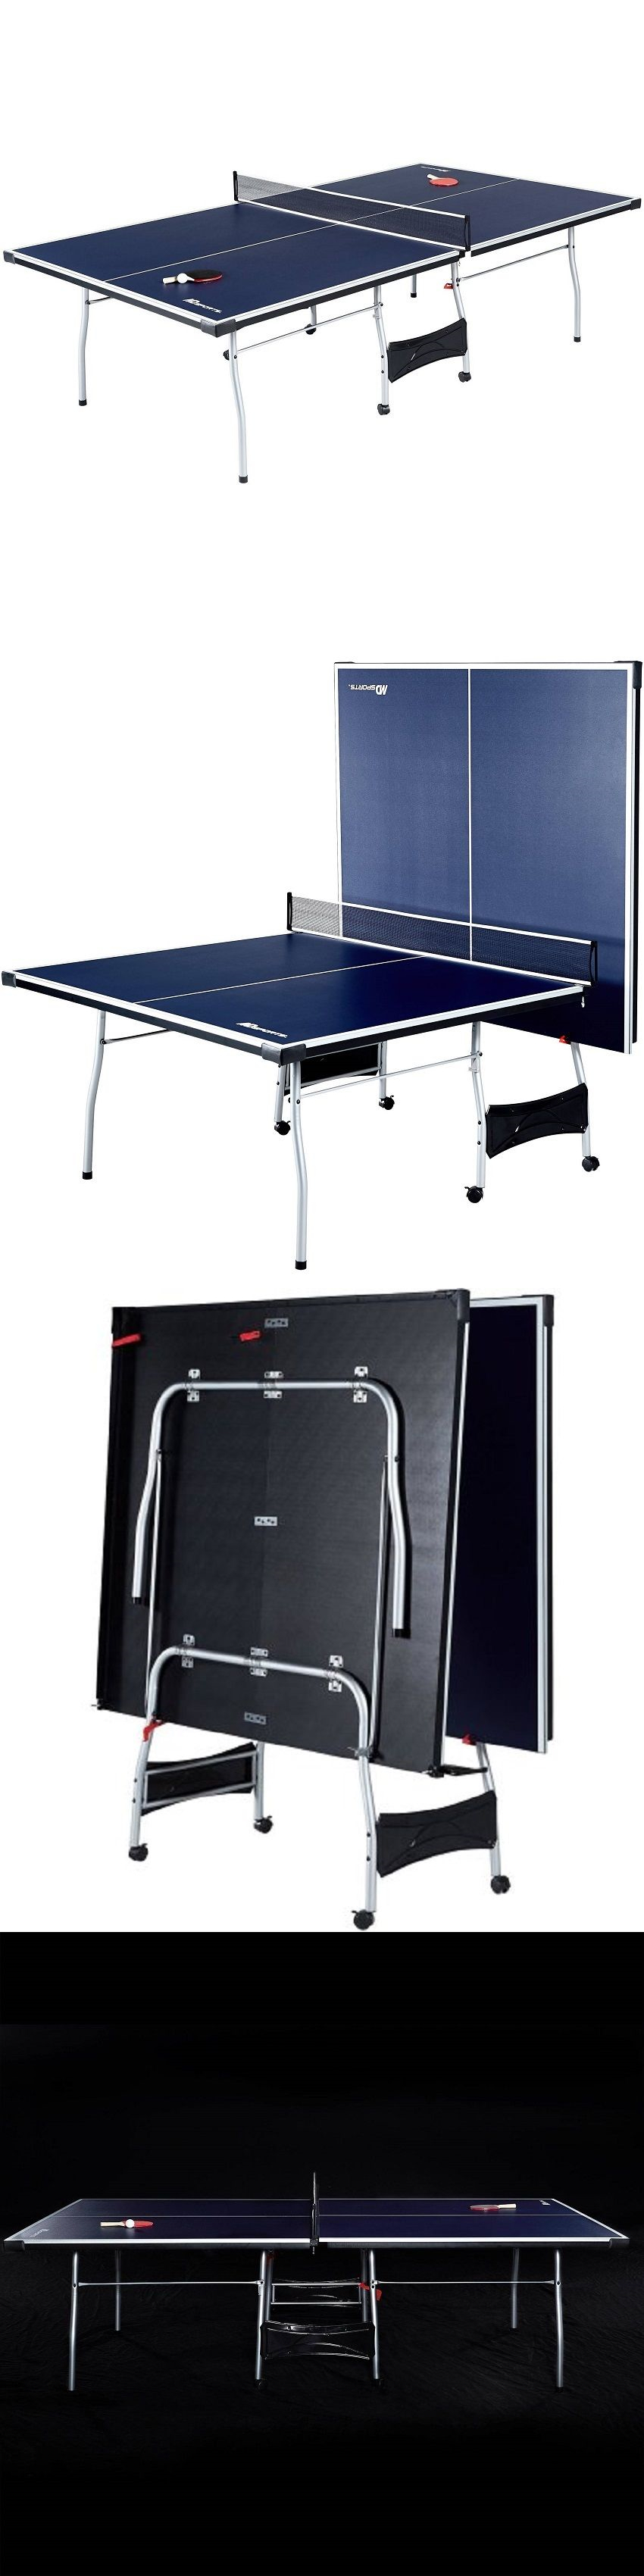 Tables 97075: Md Sports 4 Piece Table Tennis Table BUY IT NOW ONLY: